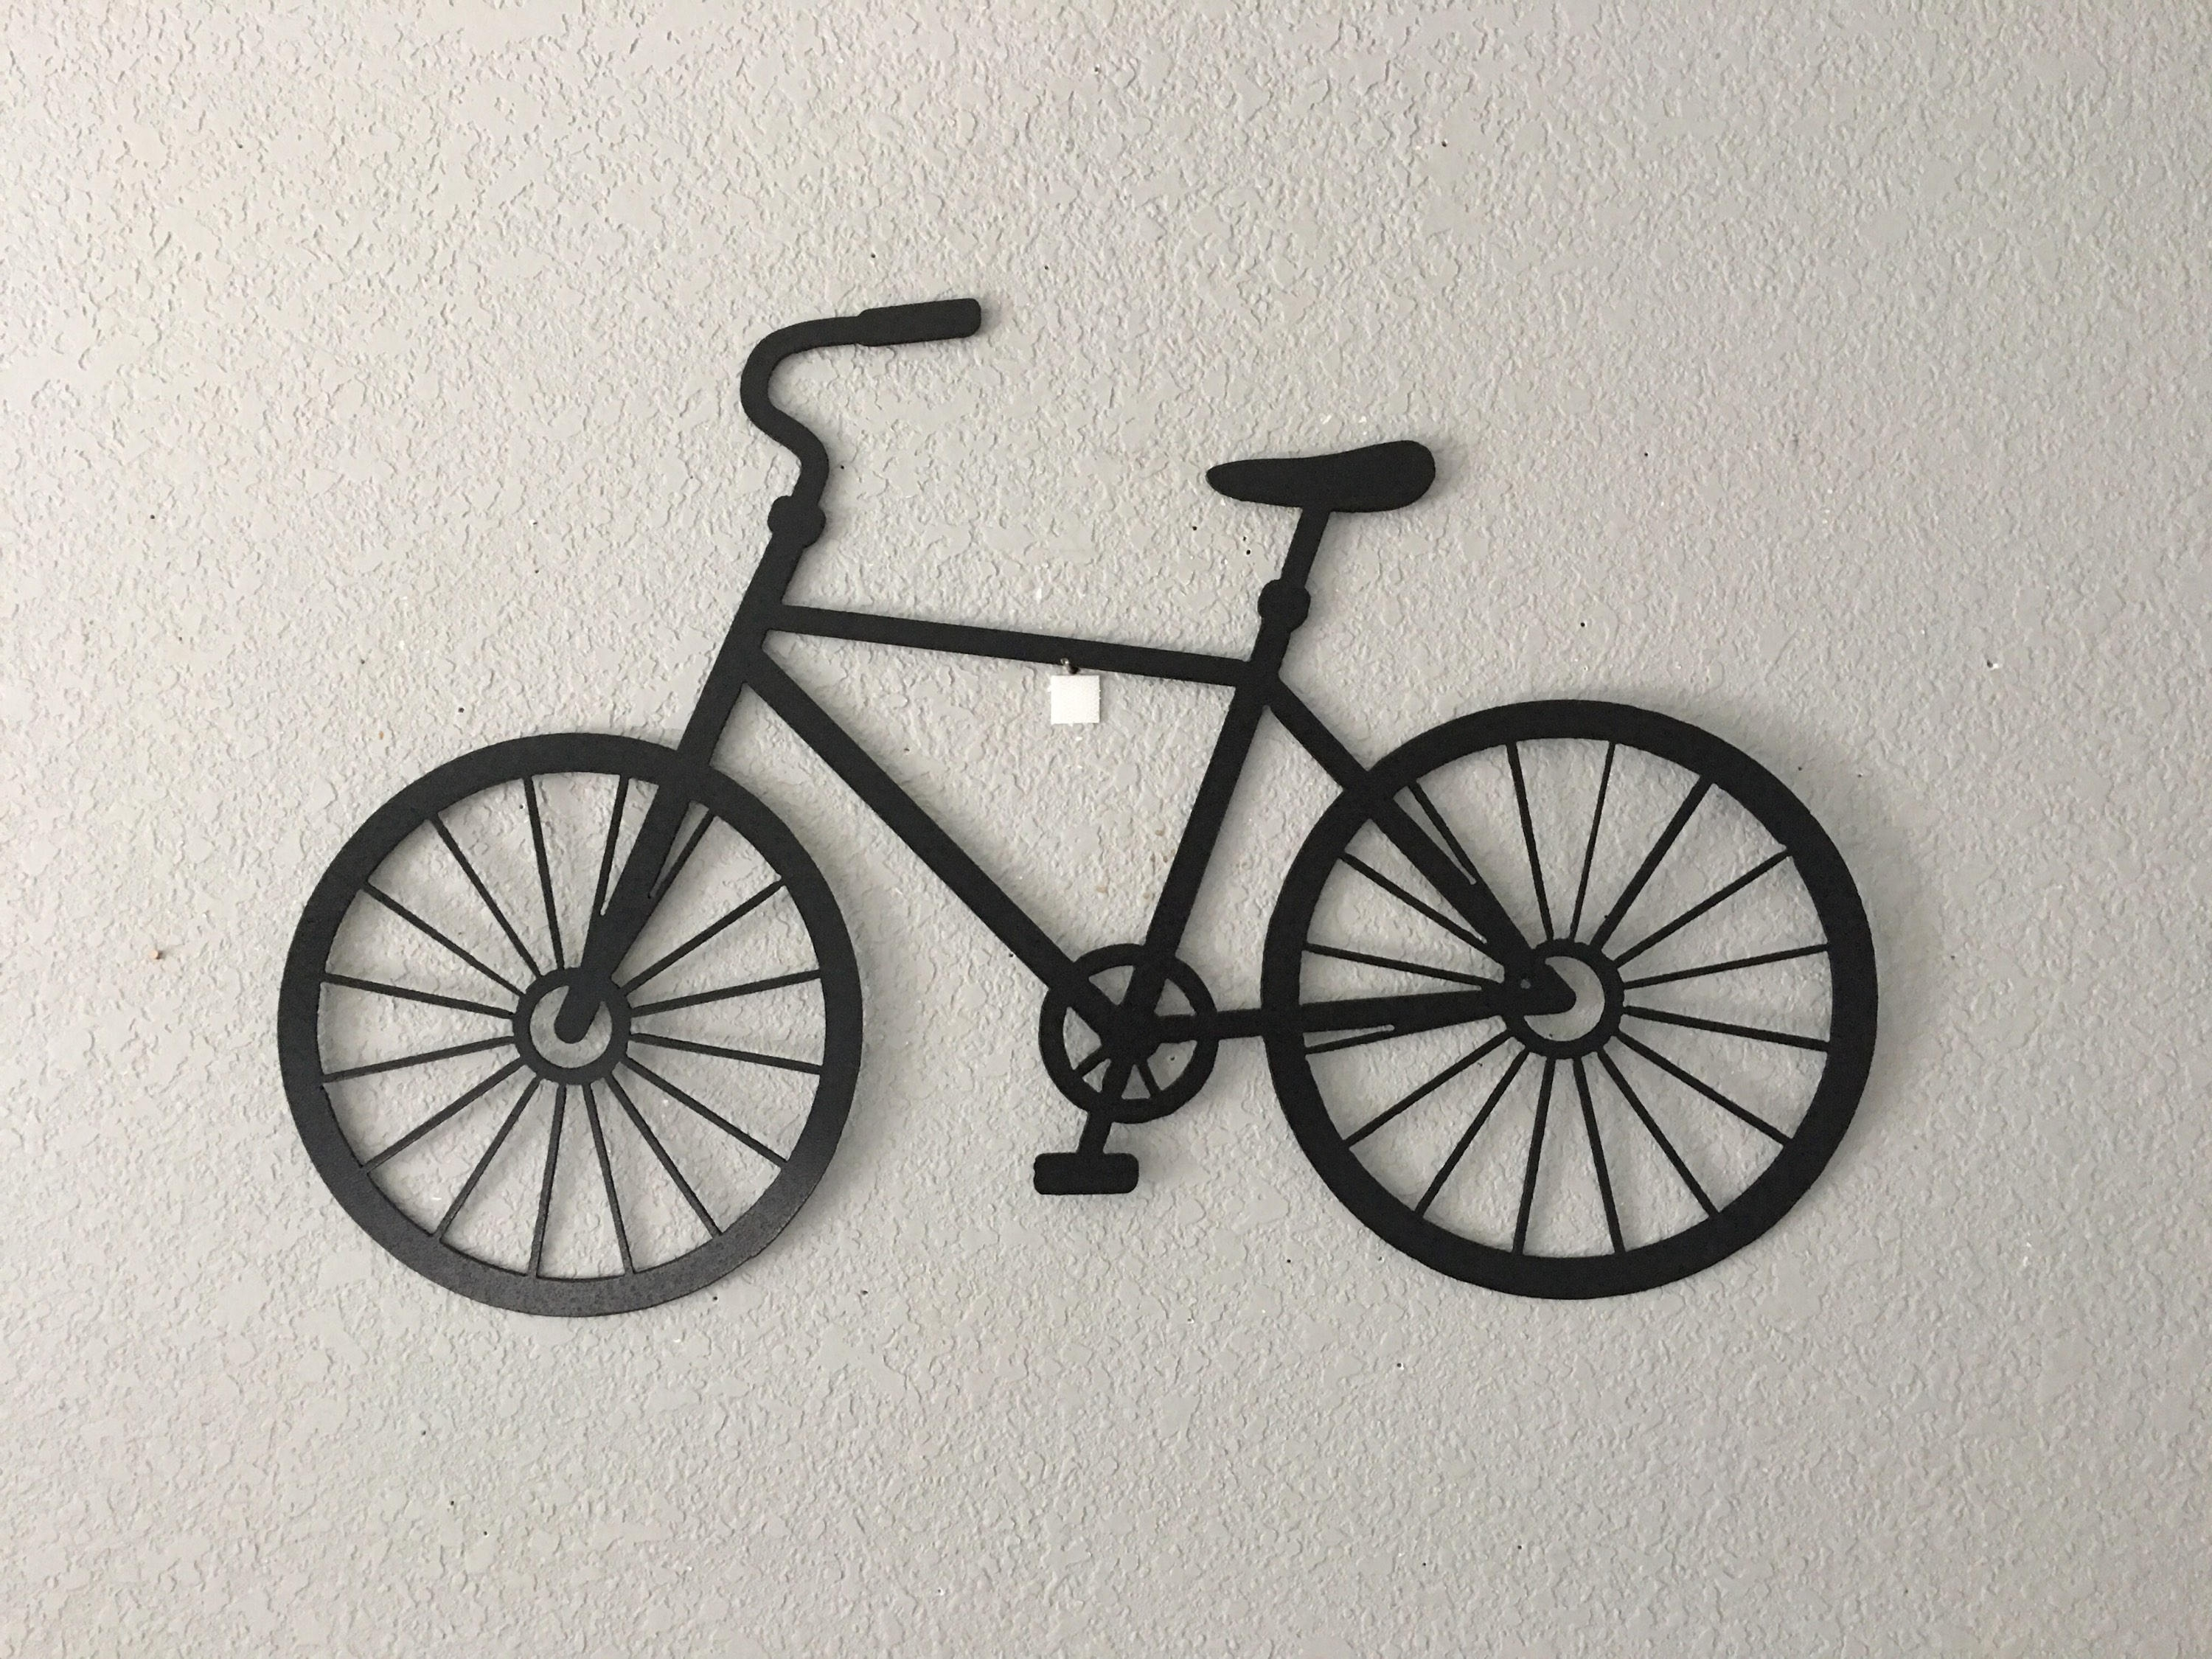 Bicycle – Bike – Wall Hanging Art – Metal Bicycles Inside Newest Metal Bicycle Wall Art (View 1 of 15)